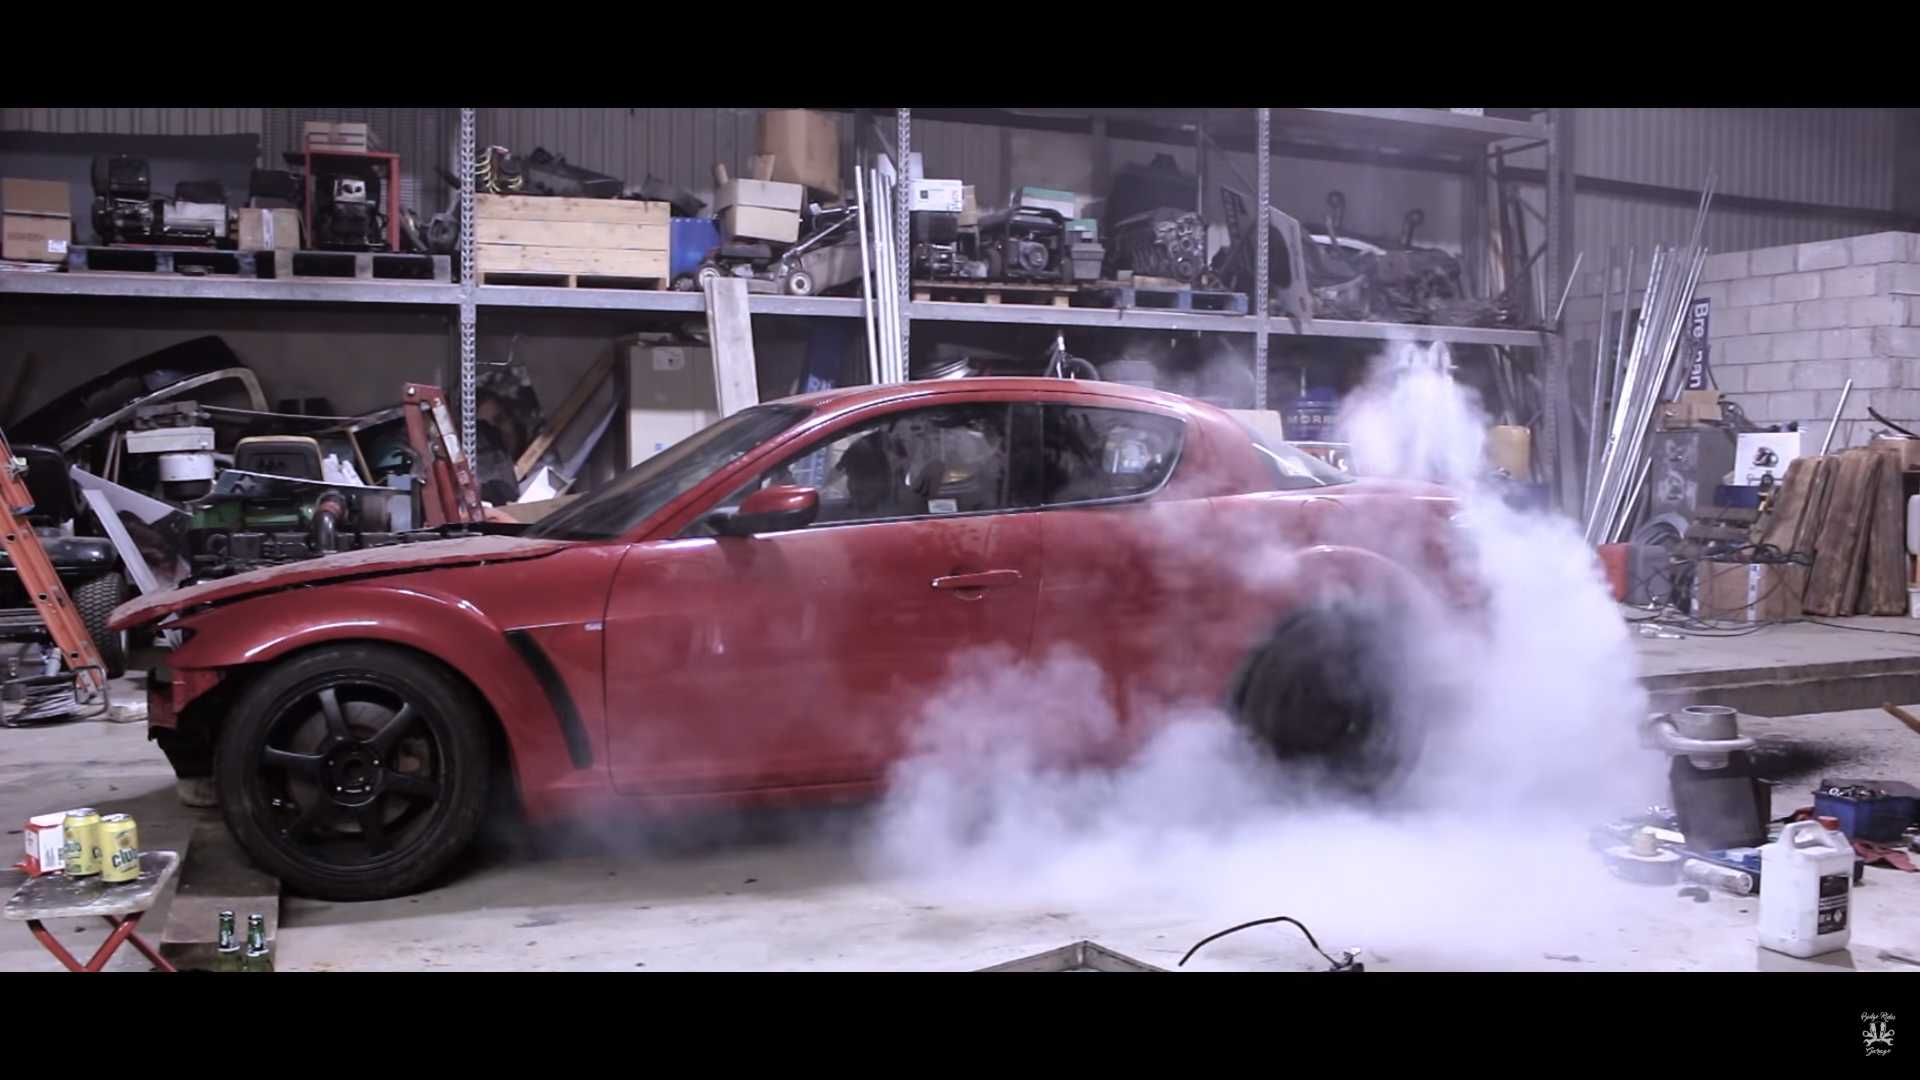 Garage Bmw Angers Crazy Mazda Rx 8 With A Cummins Diesel Swap Angers Everyone